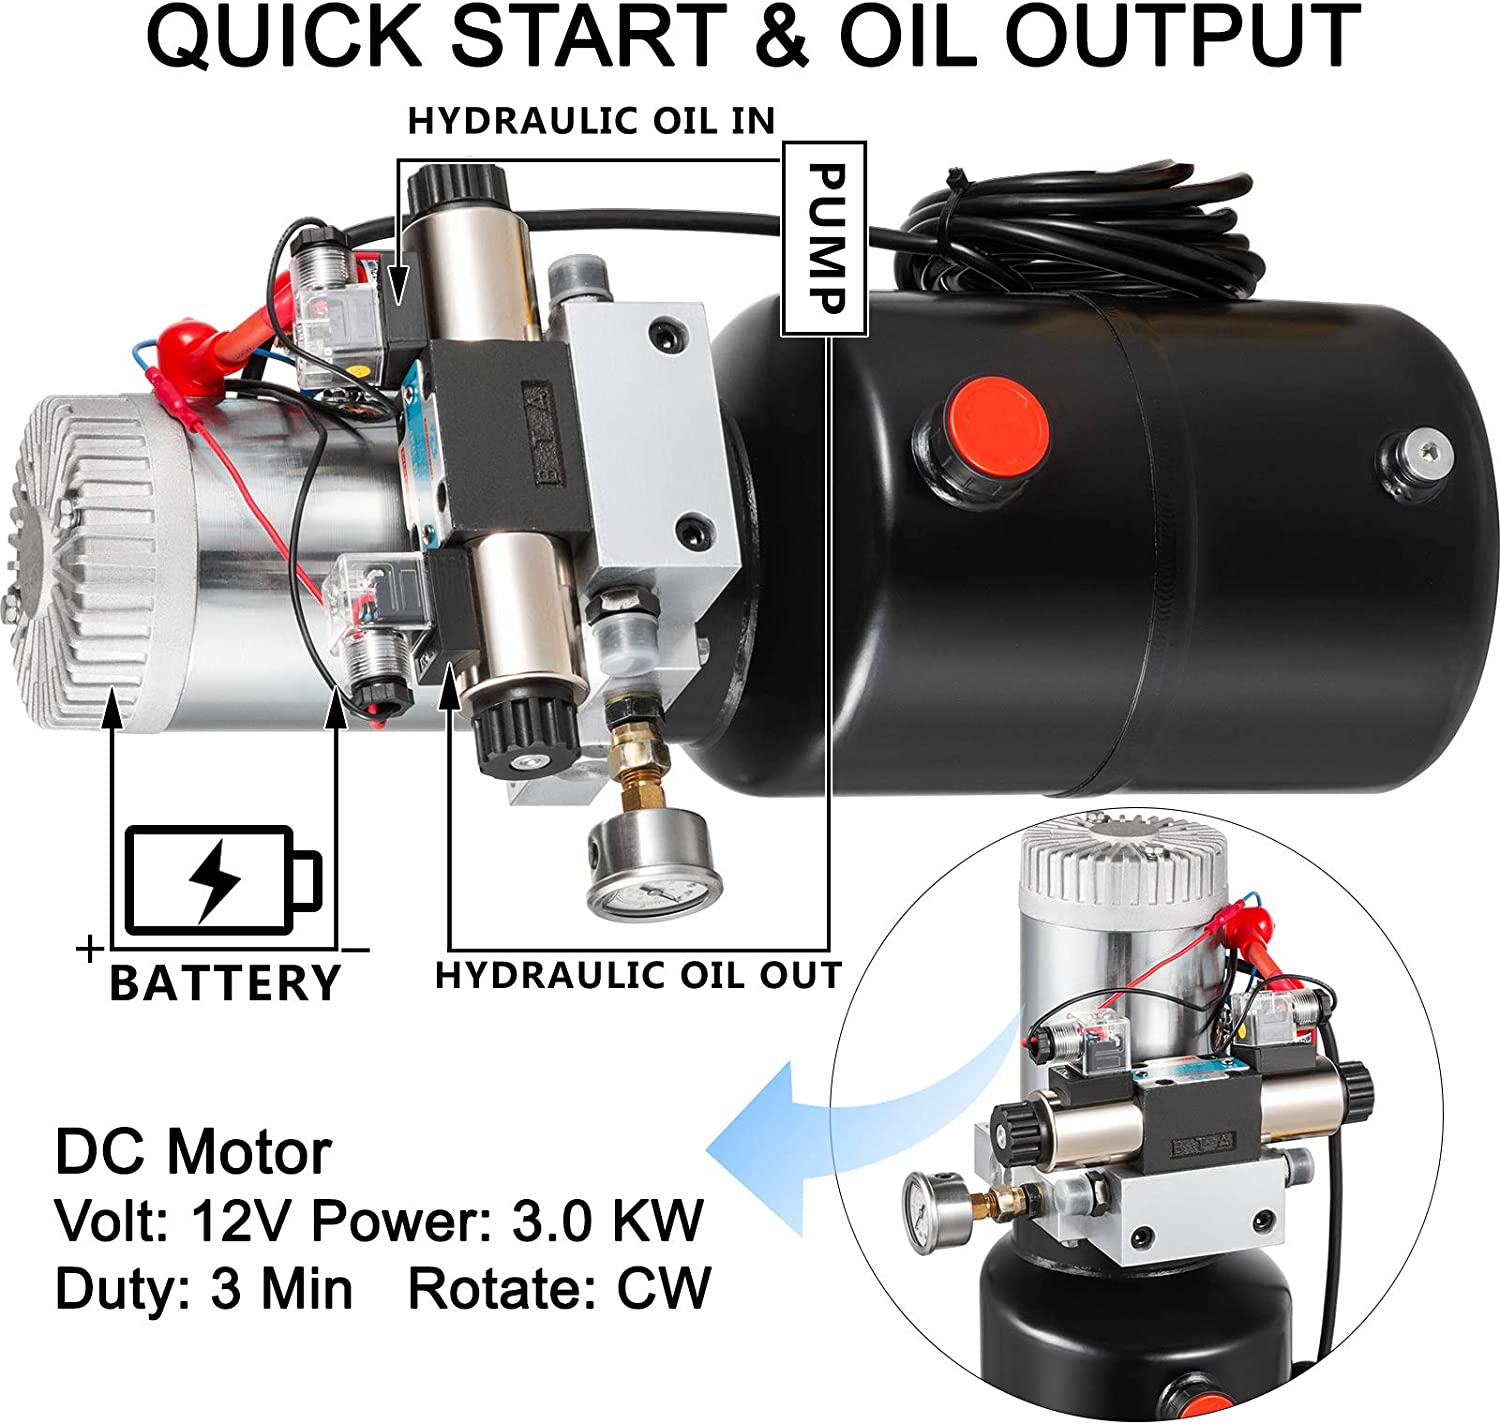 """Retracted 23 Extended 34/"""" Hydraulic Side Link Swivel Eye Bearing w//Check Valve for Tractors Top Link Hydraulic Cylinder 13/"""" Stroke Category 1 2 VEVOR Double Acting Hydraulic Cylinder 2/"""" Bore"""